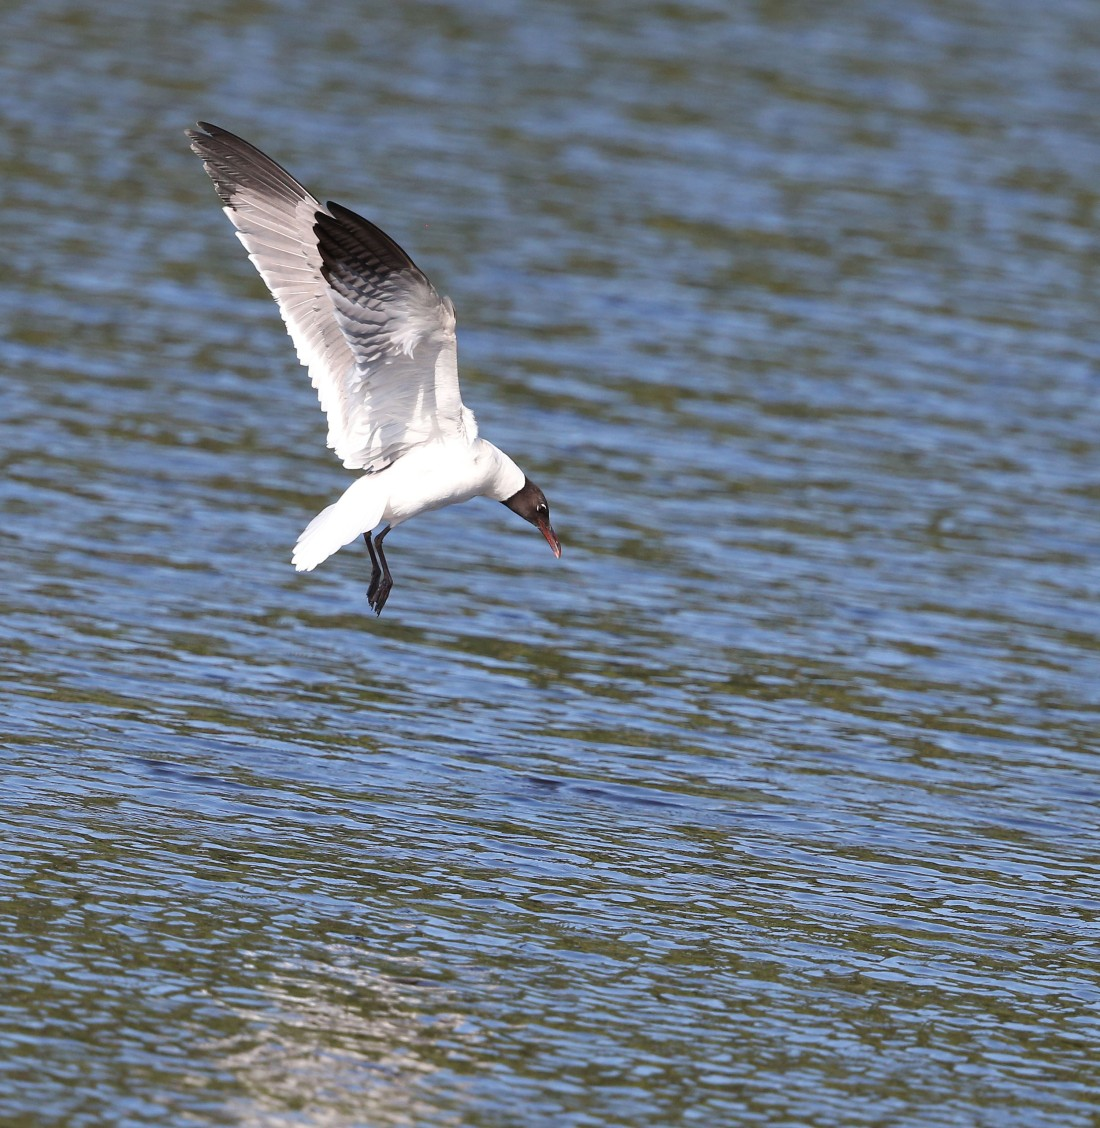 Laughing Gull diving for food